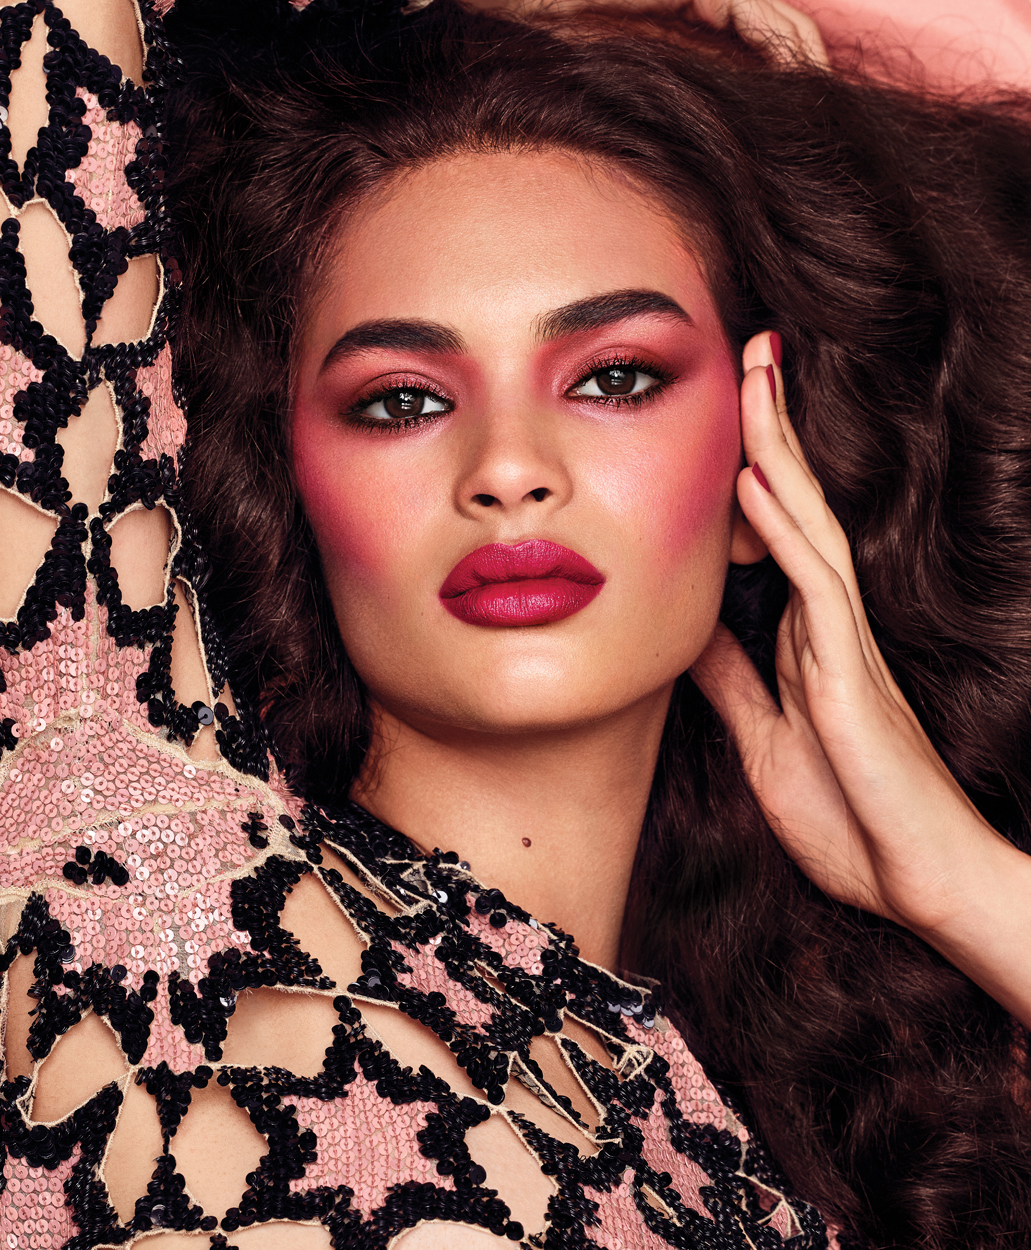 Fashion Photographer Michael Schwartz: model Aira in Marc Jacobs beauty and Vogue Mexico magazine